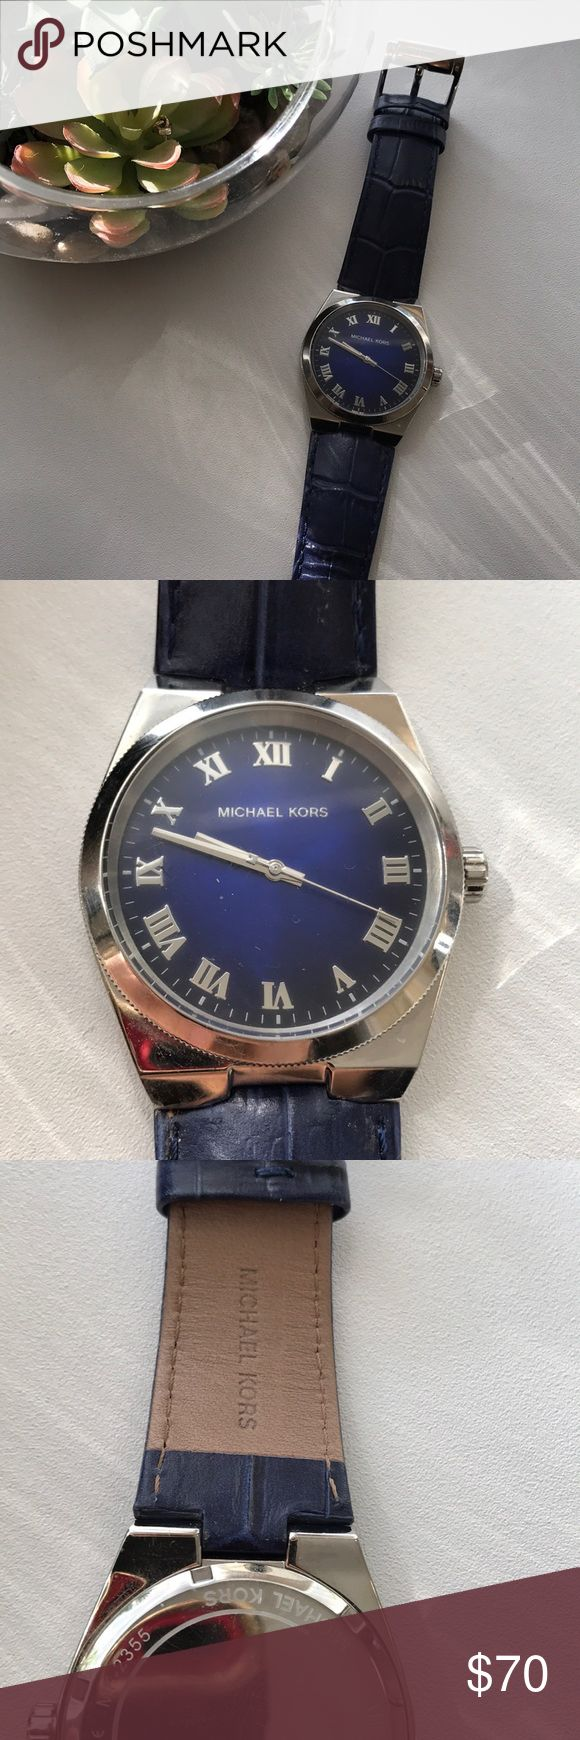 Michael Kors Blue Watch with genuine leather strap Micheal Kors Watch like new and only worn a few times. Excellent Condition. (Battery not included) KORS Michael Kors Jewelry